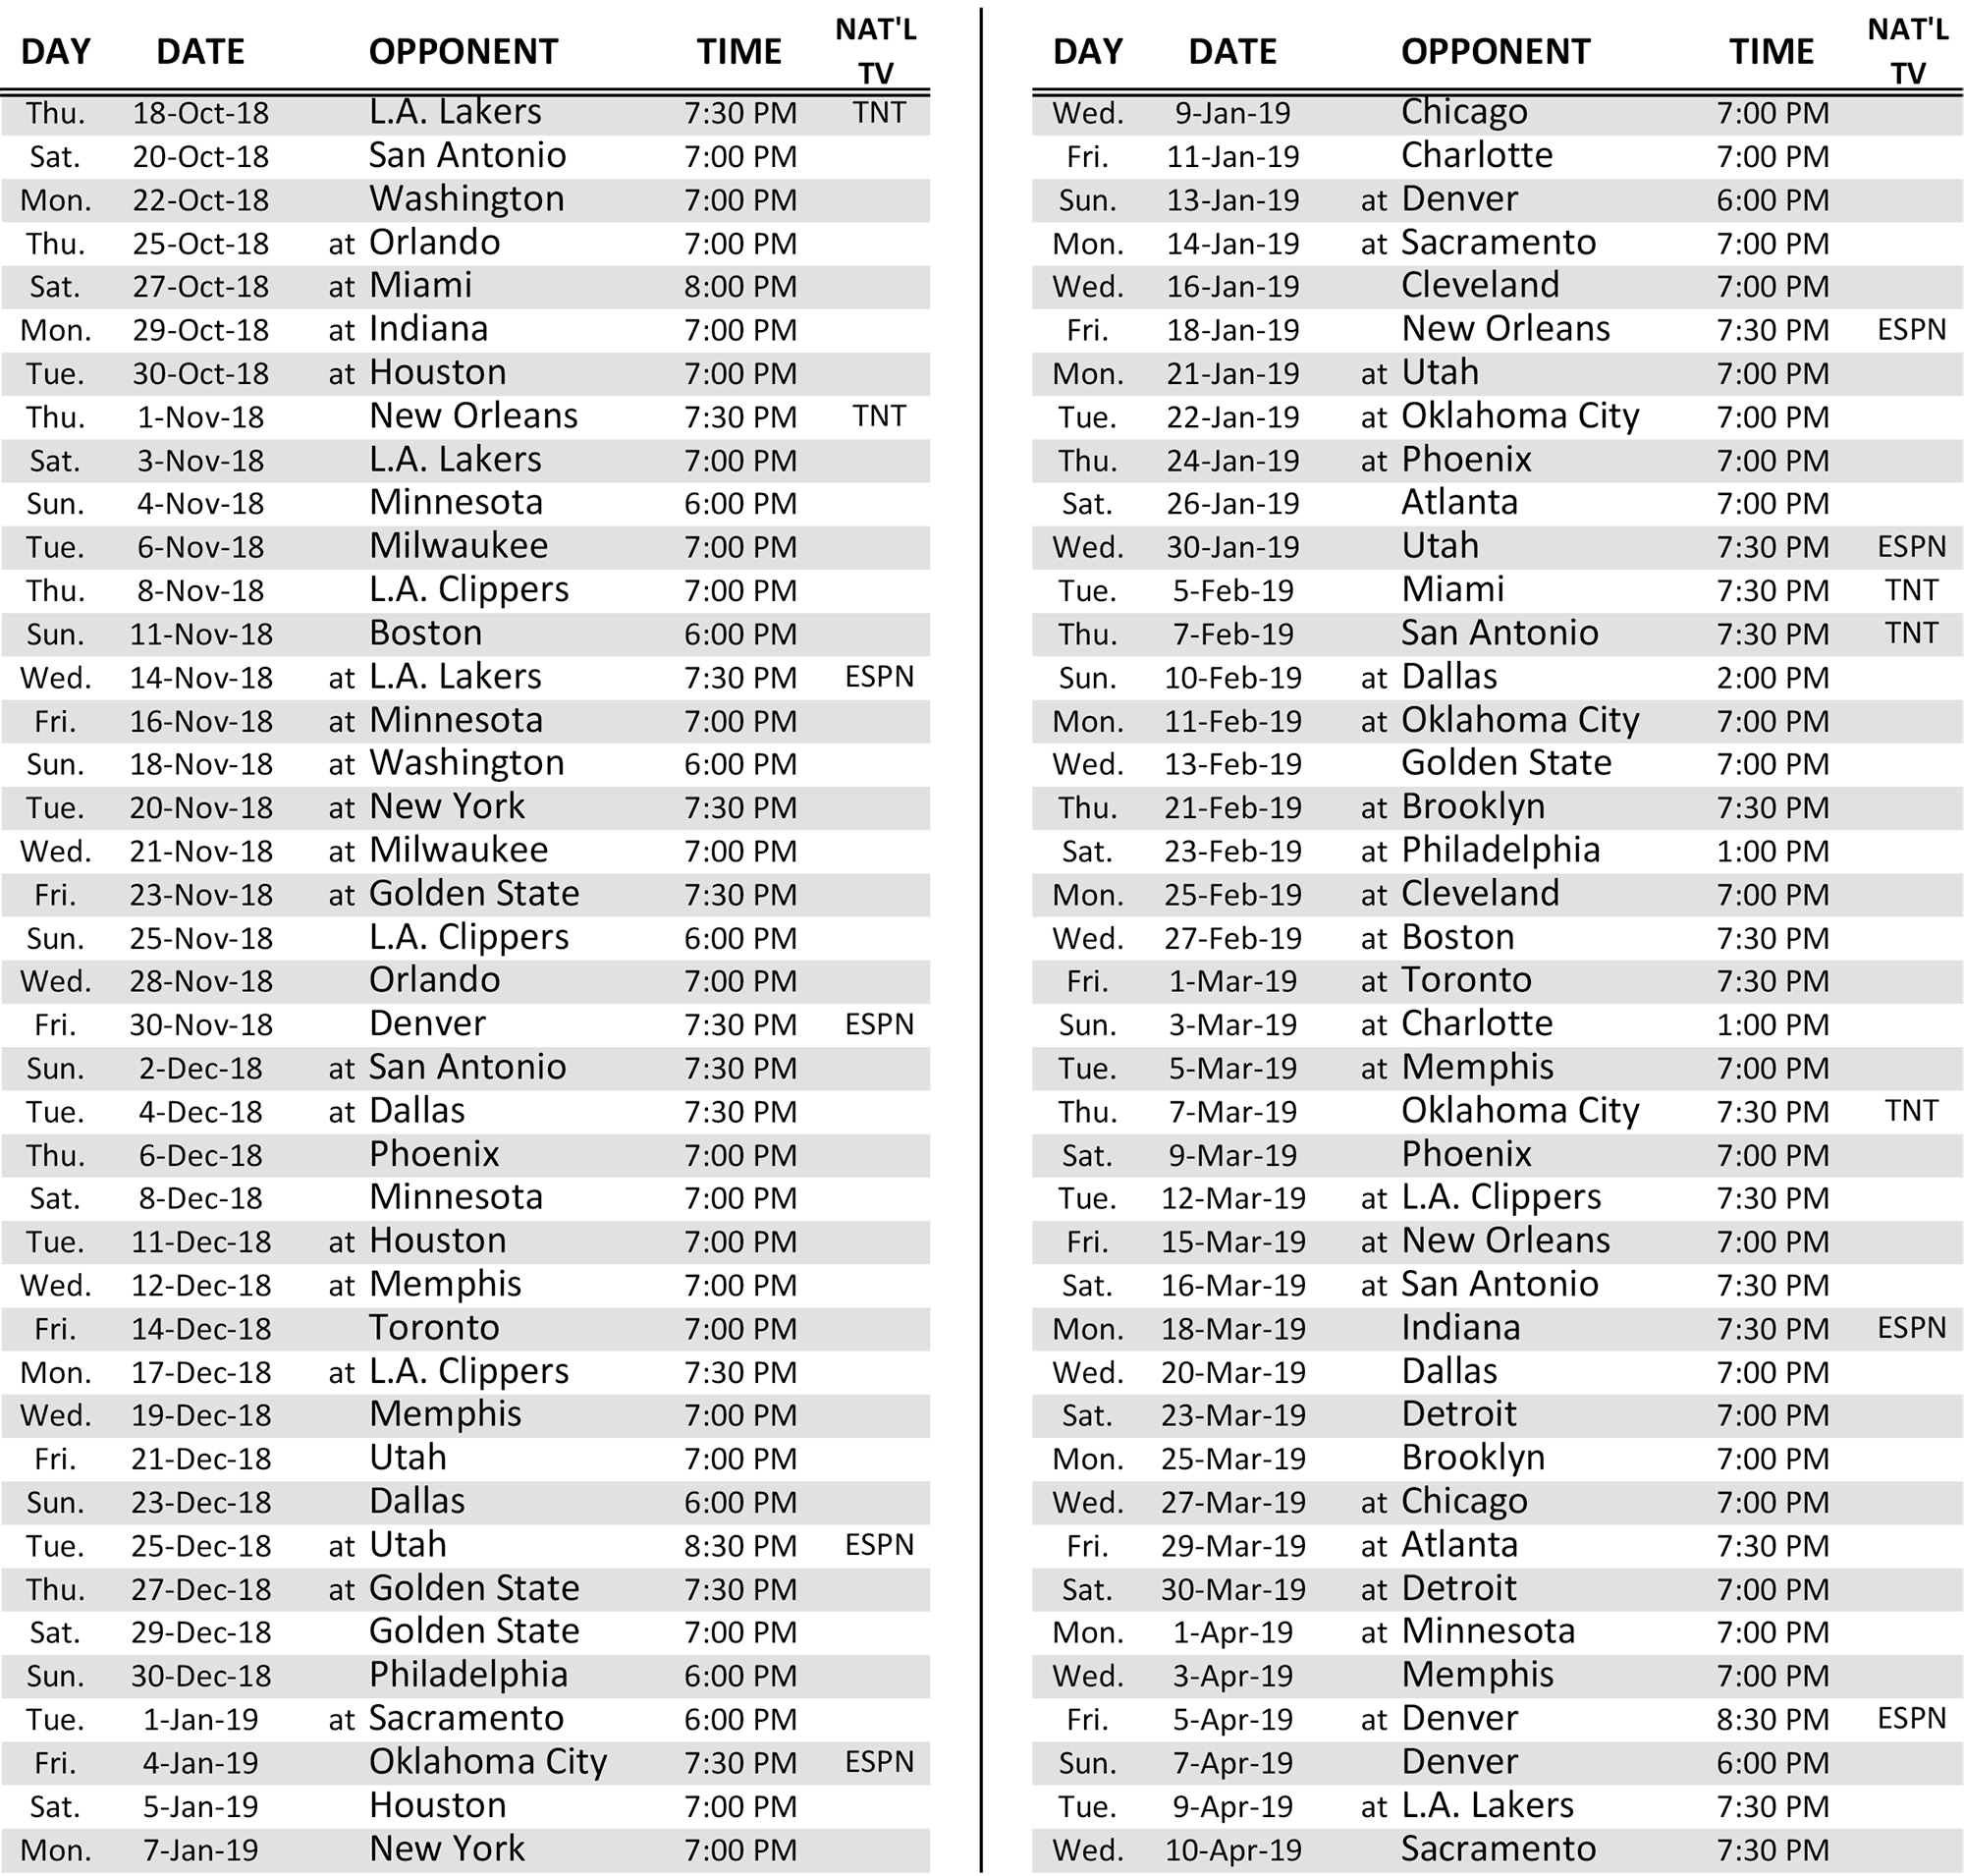 Portland Trailblazers Schedule Examples And Forms